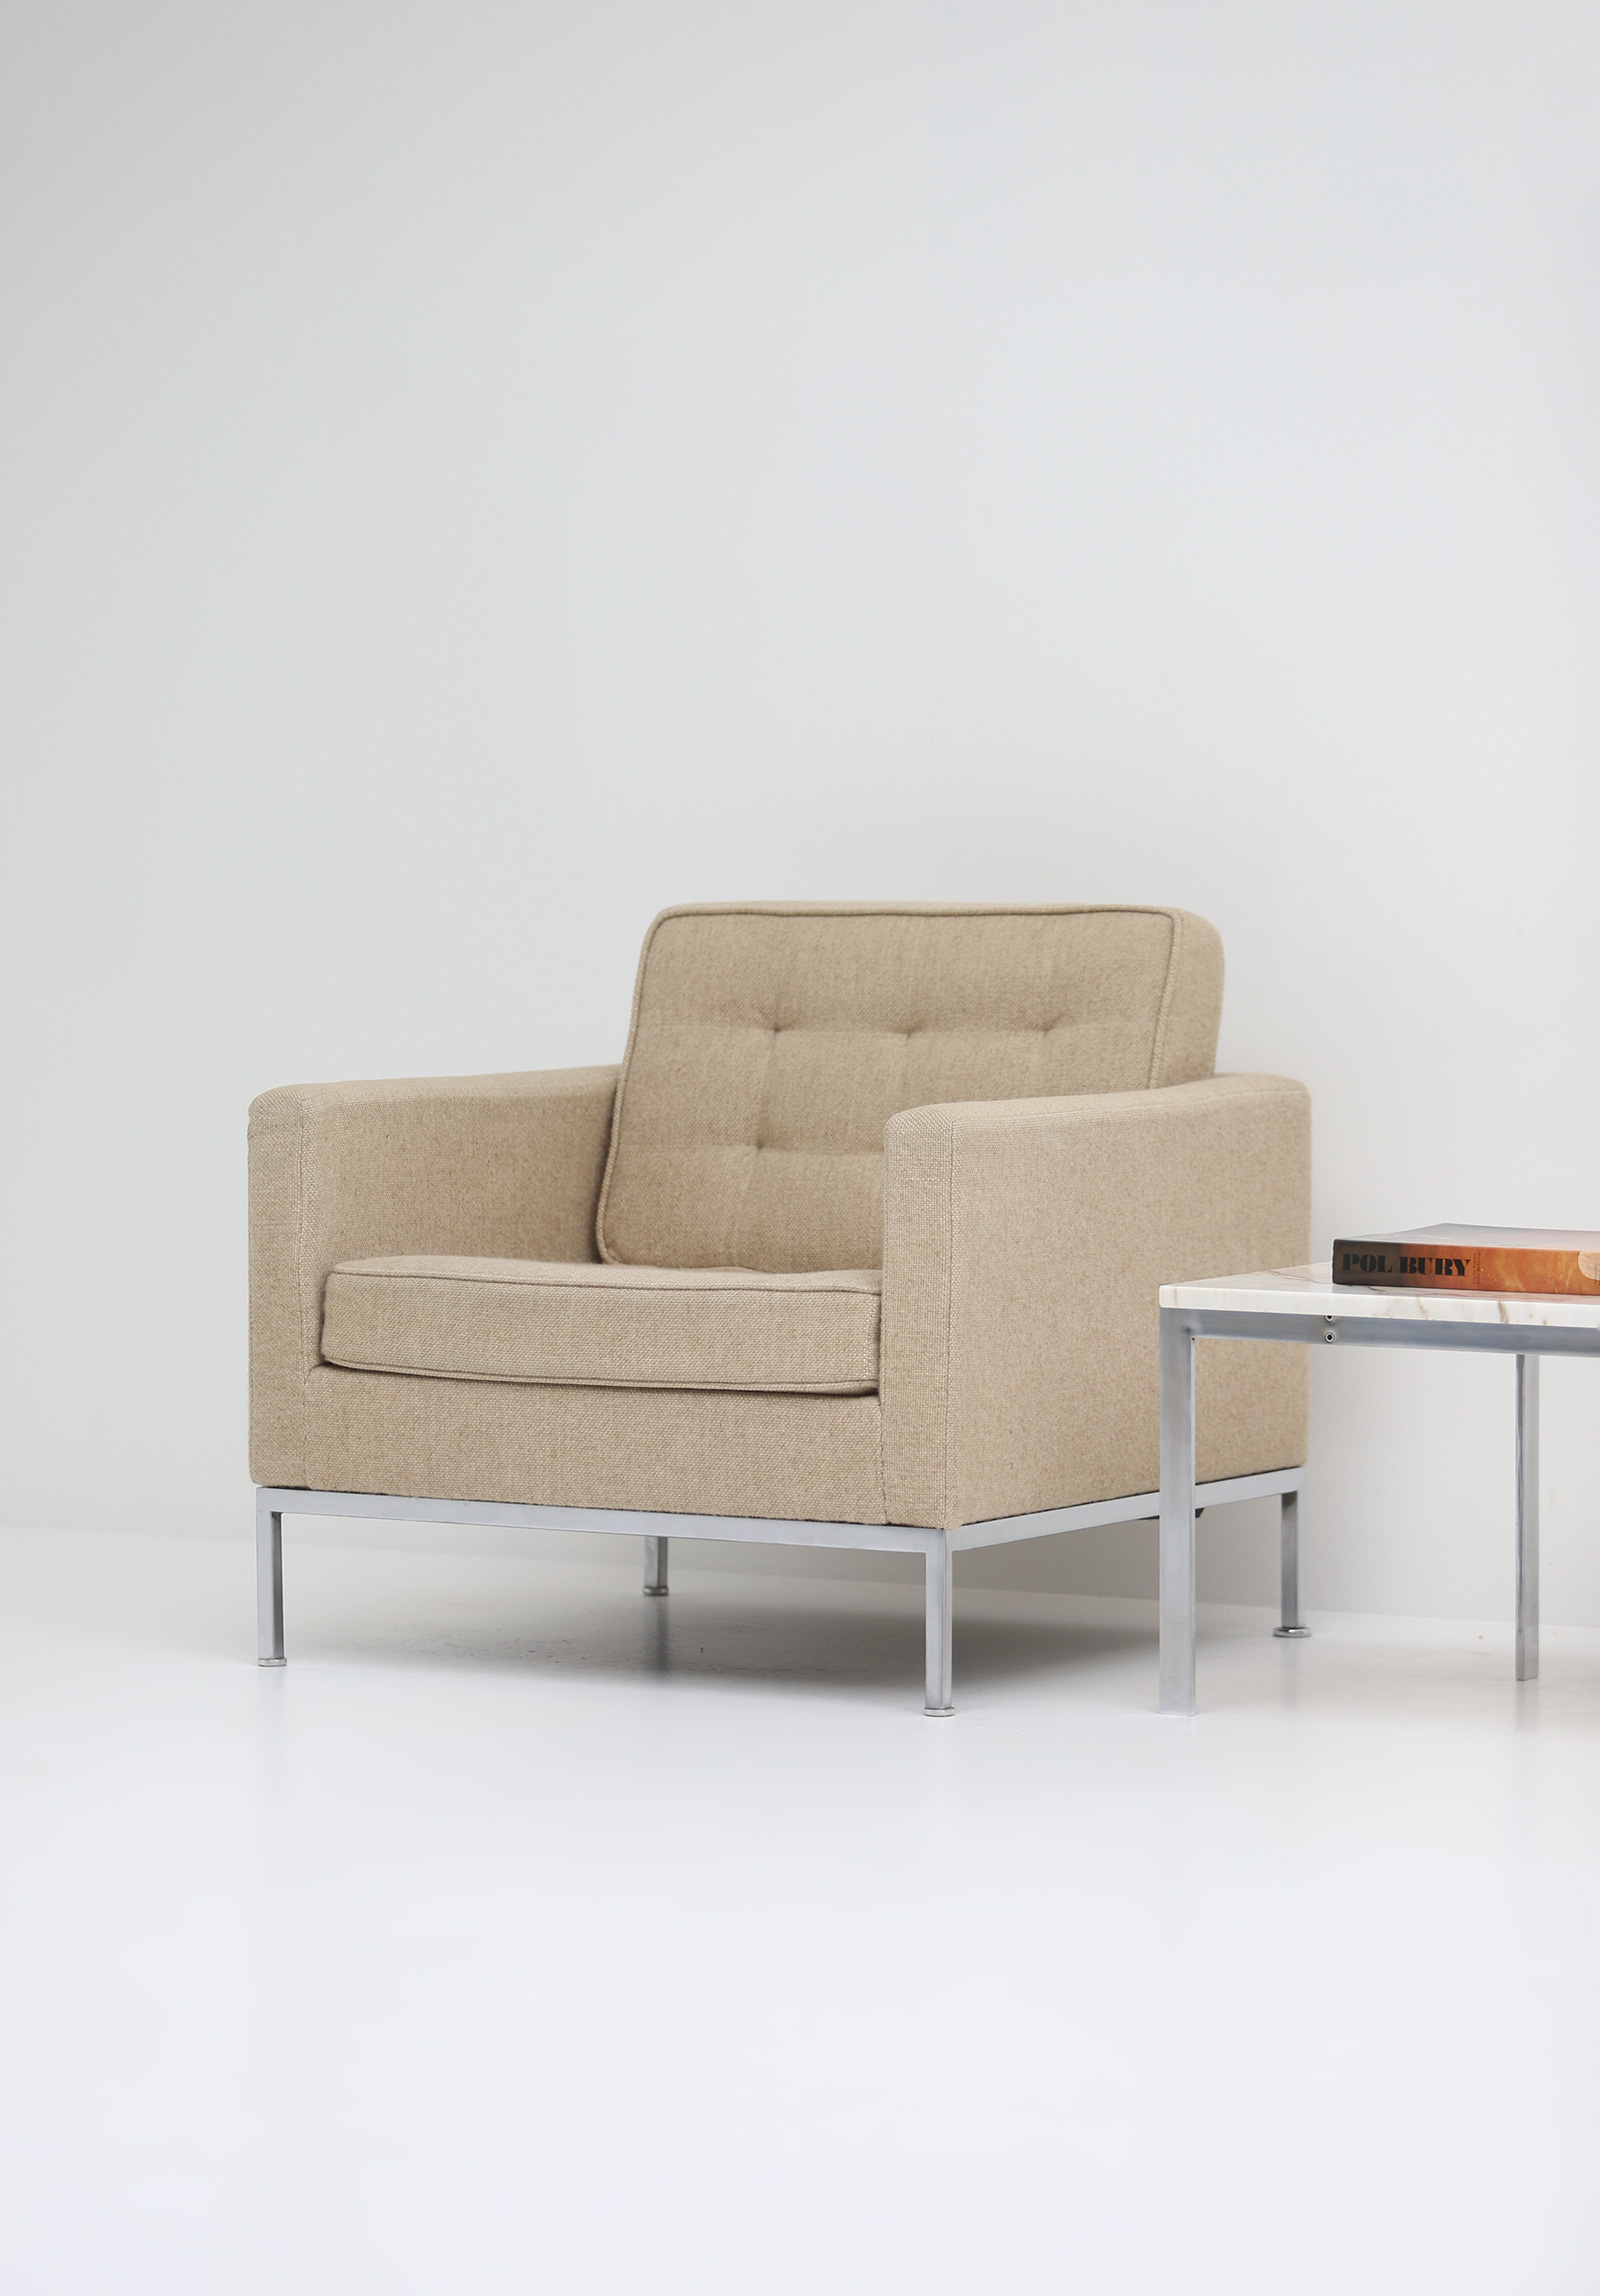 Florence Knoll Arm Chairsimage 7